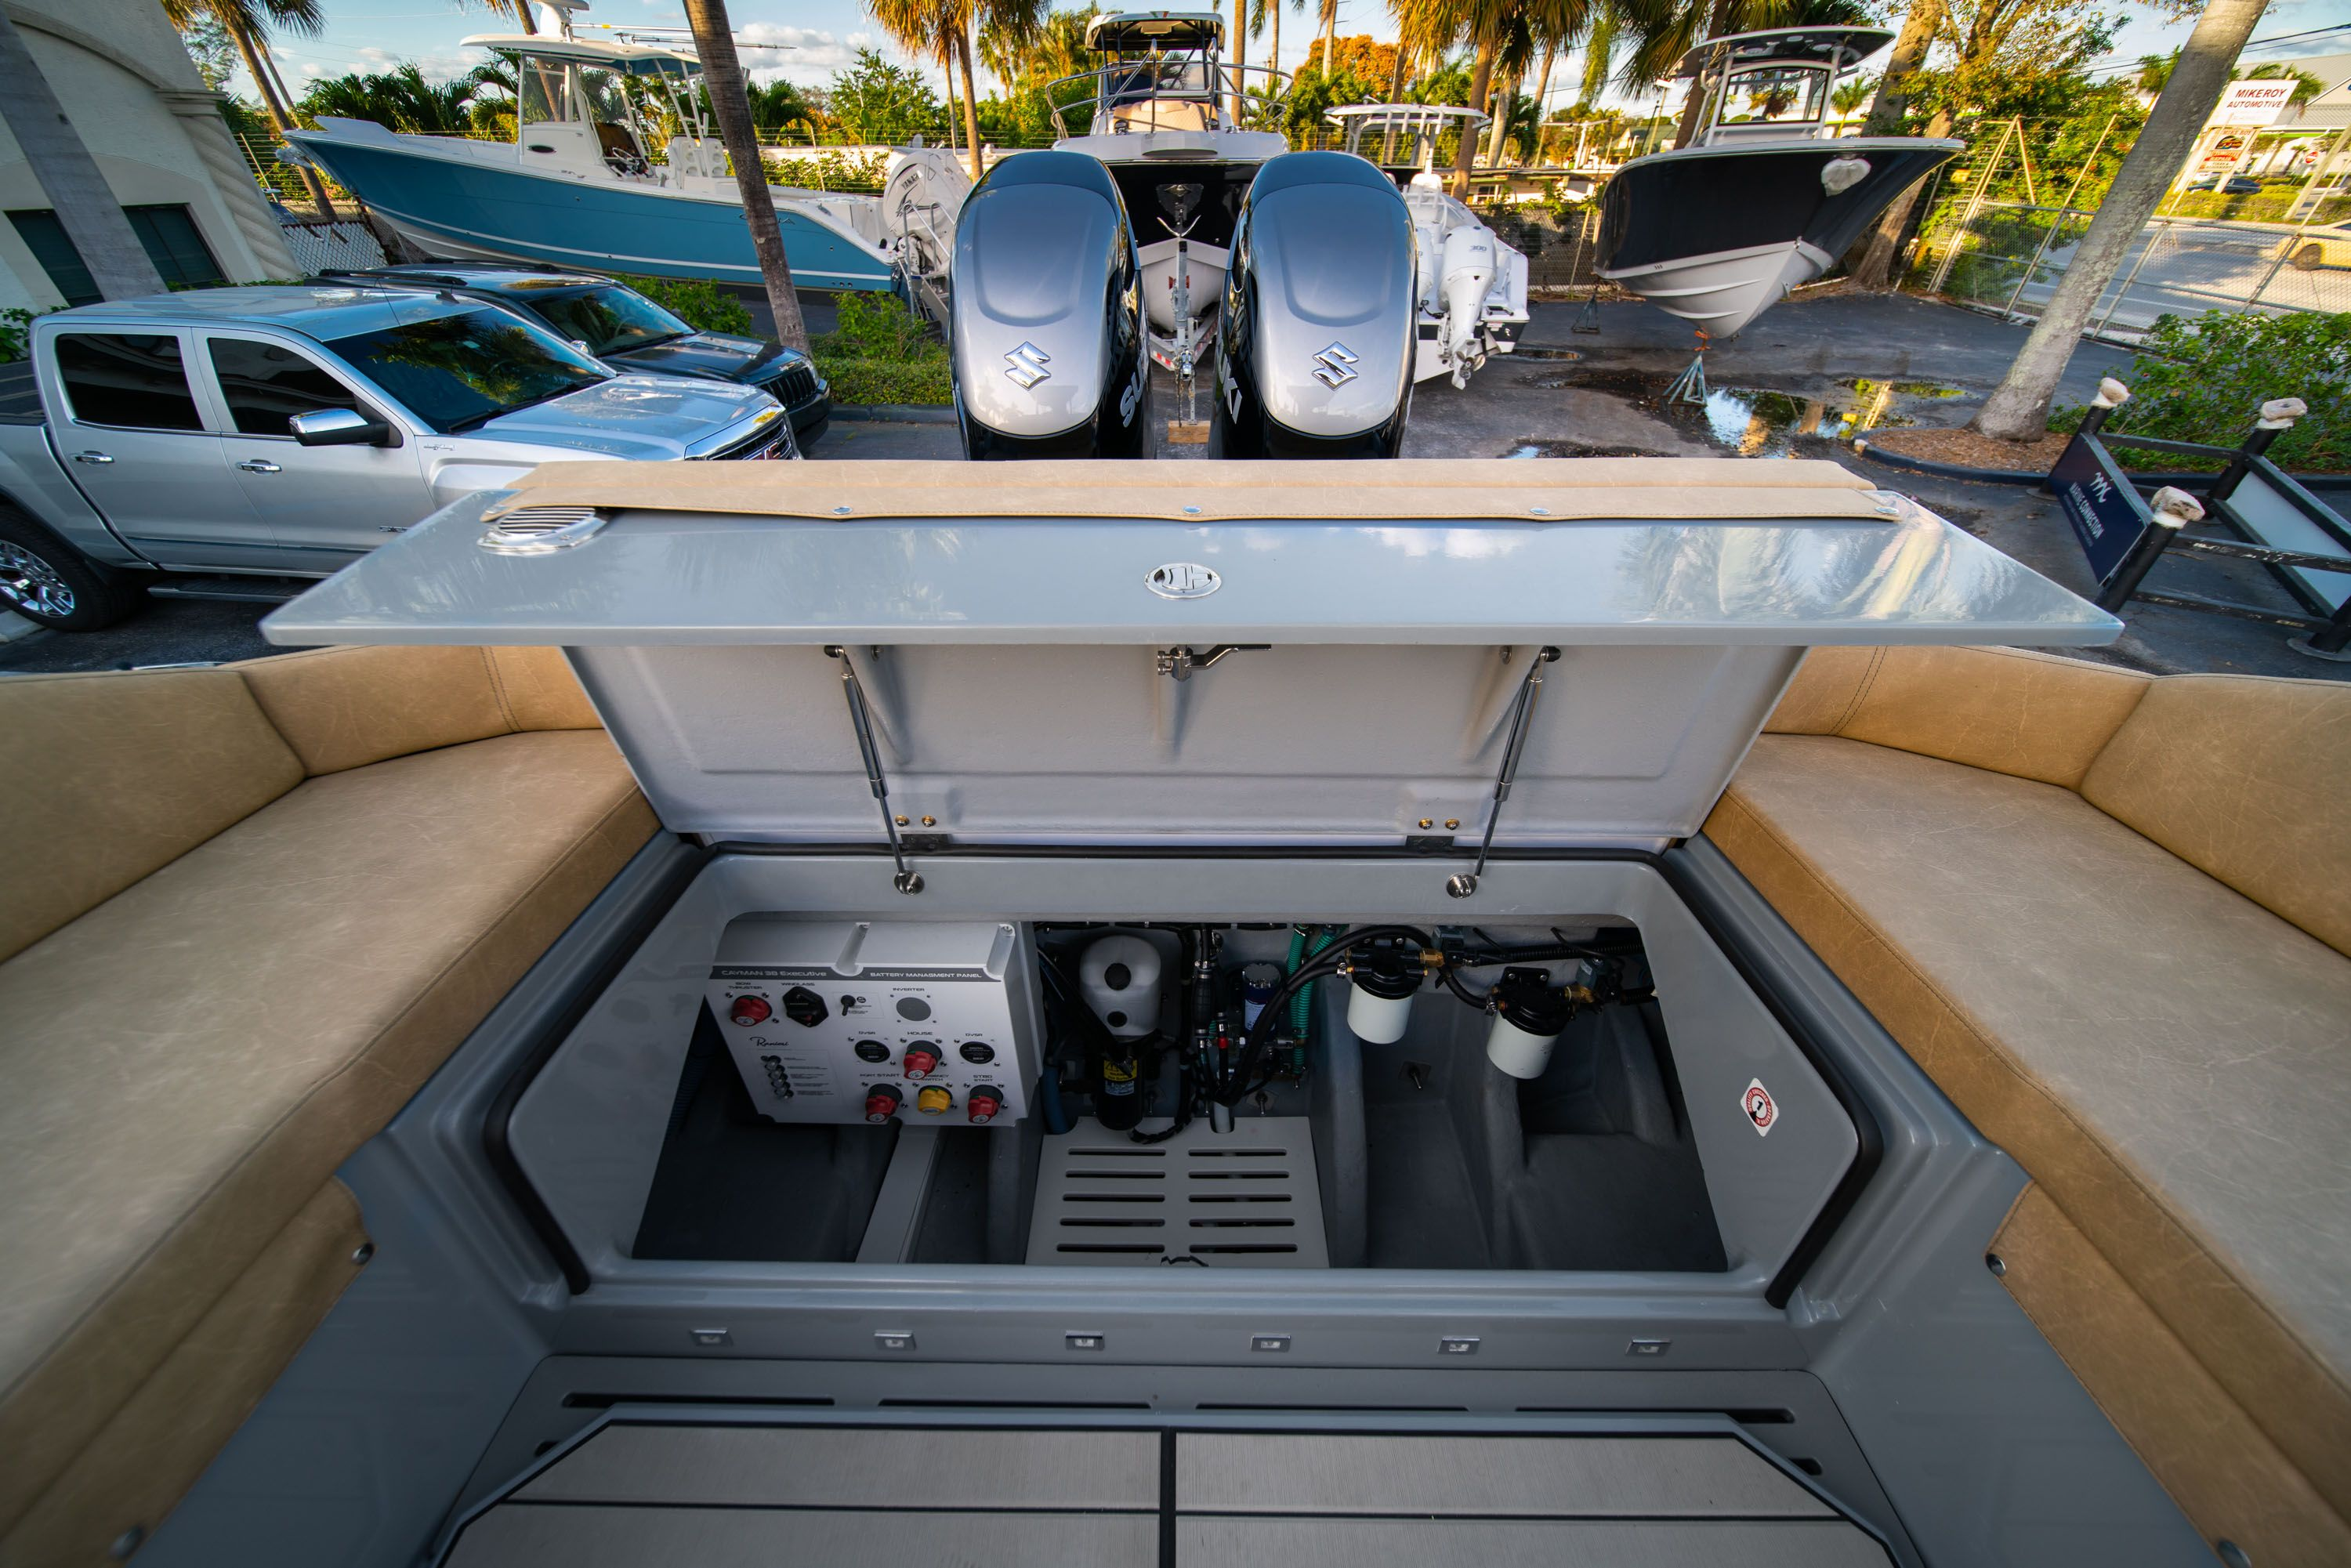 Thumbnail 21 for New 2019 Ranieri Cayman 38 Executive boat for sale in West Palm Beach, FL